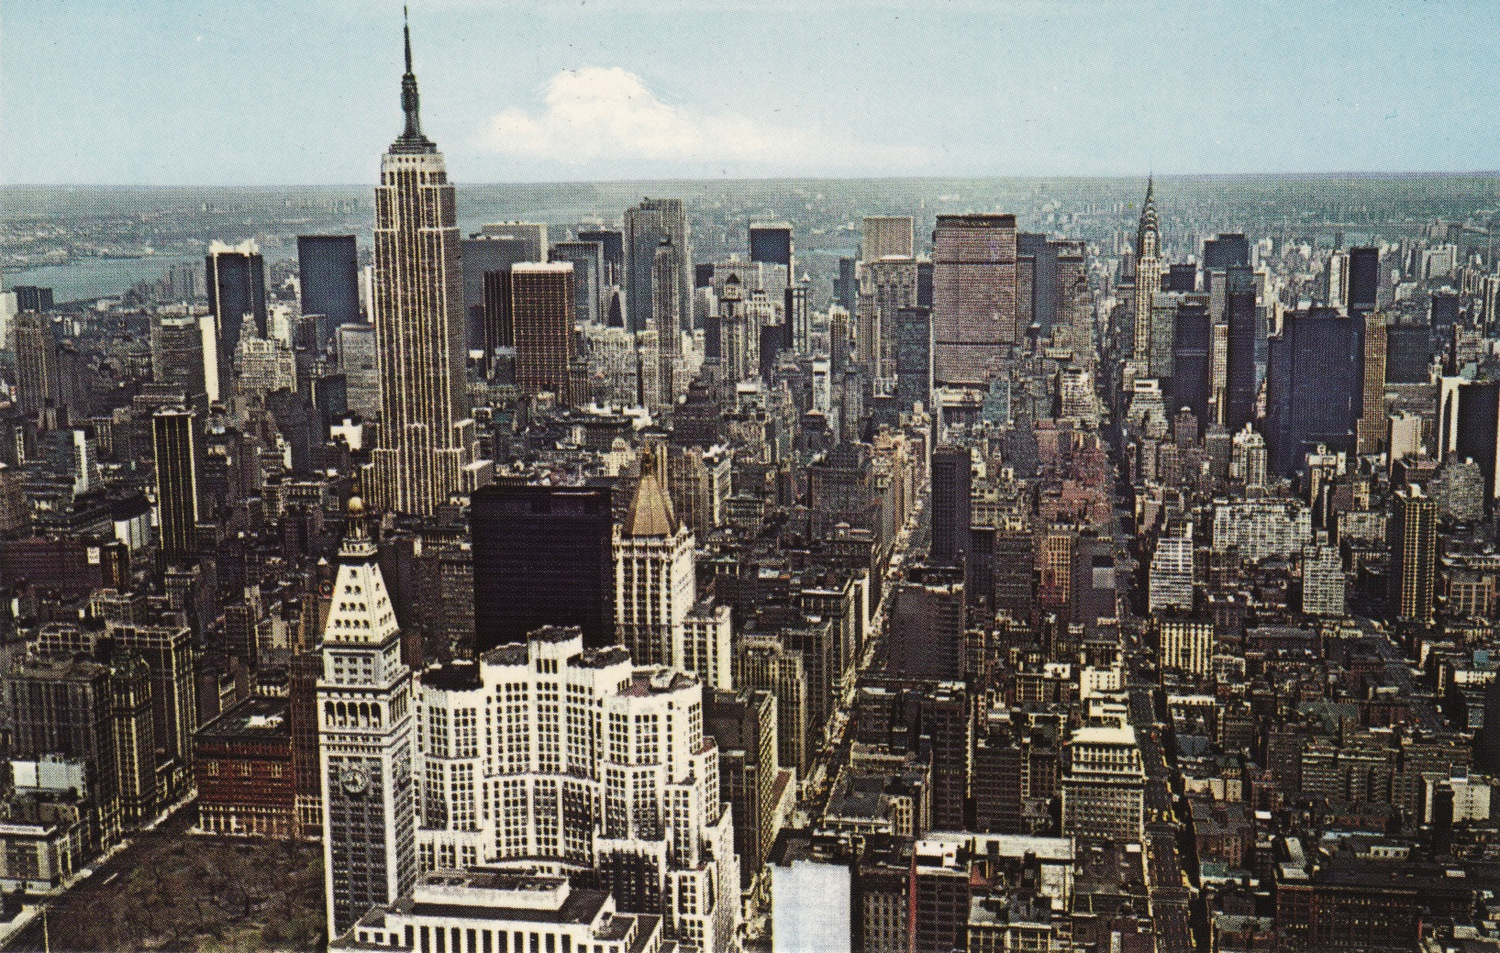 Turning the view north, the white skyscrapers in the foreground are the Metropolitan Life Building and New York Life Insurance Buildings.